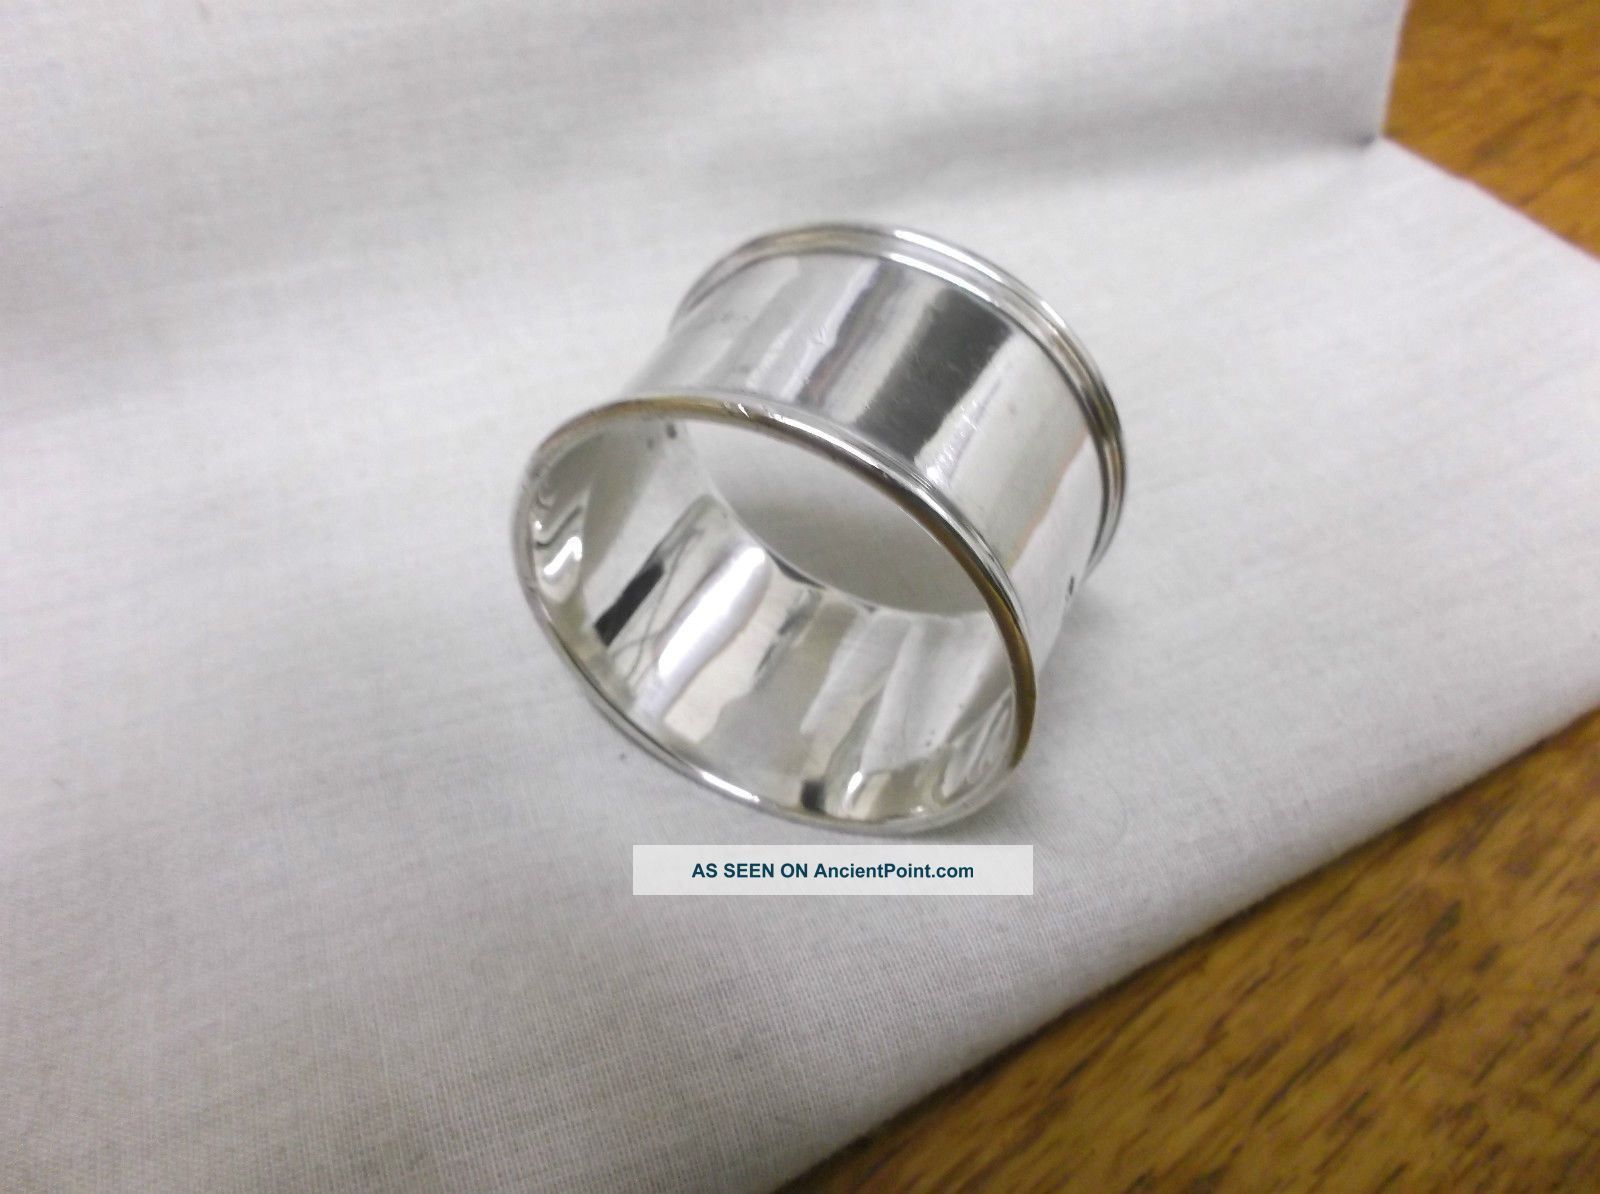 A Vintage Sterling Silver Napkin Ring Birmingham 1903 Napkin Rings & Clips photo